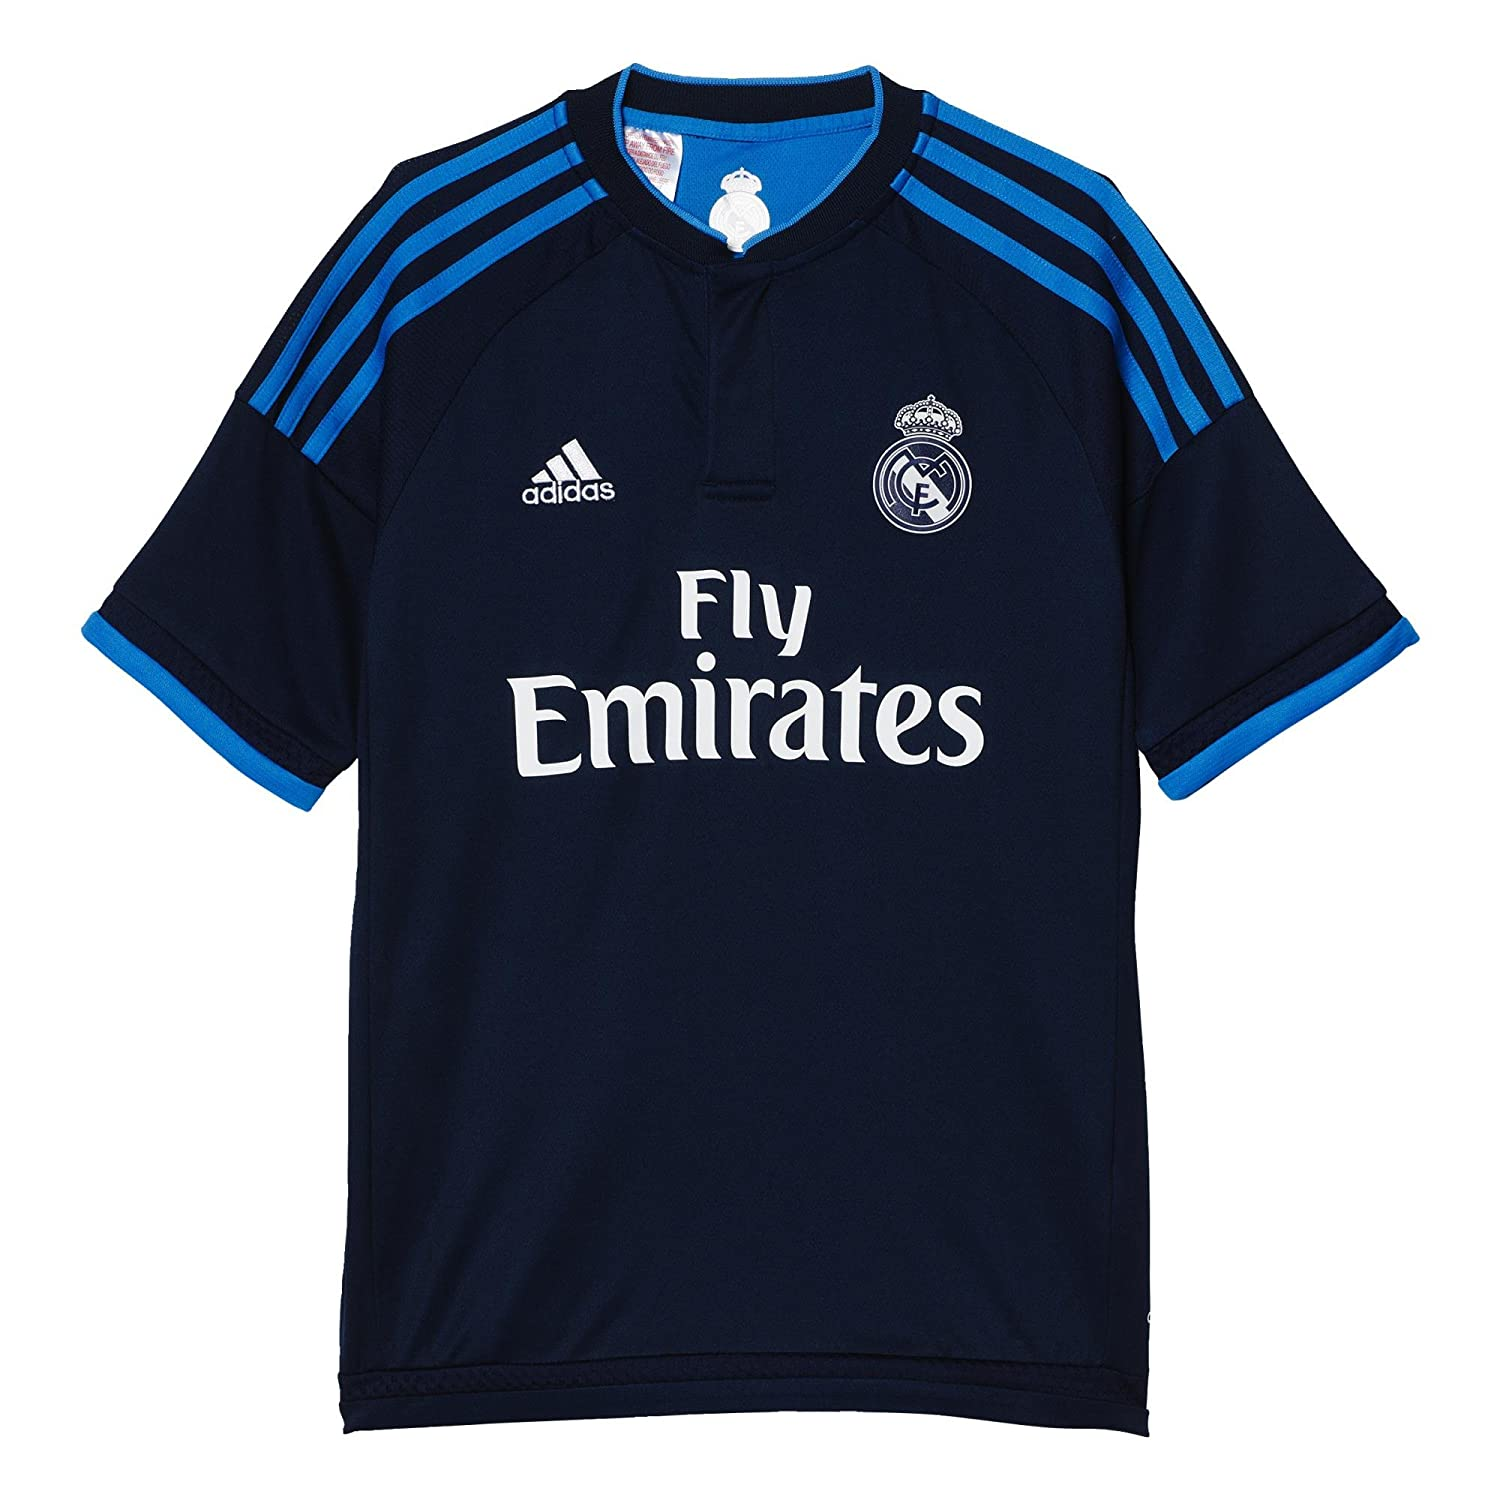 2015-2016 Real Madrid Adidas Third Shirt (Kids) B00W5IX8L8Navy Small Boys 26-28\